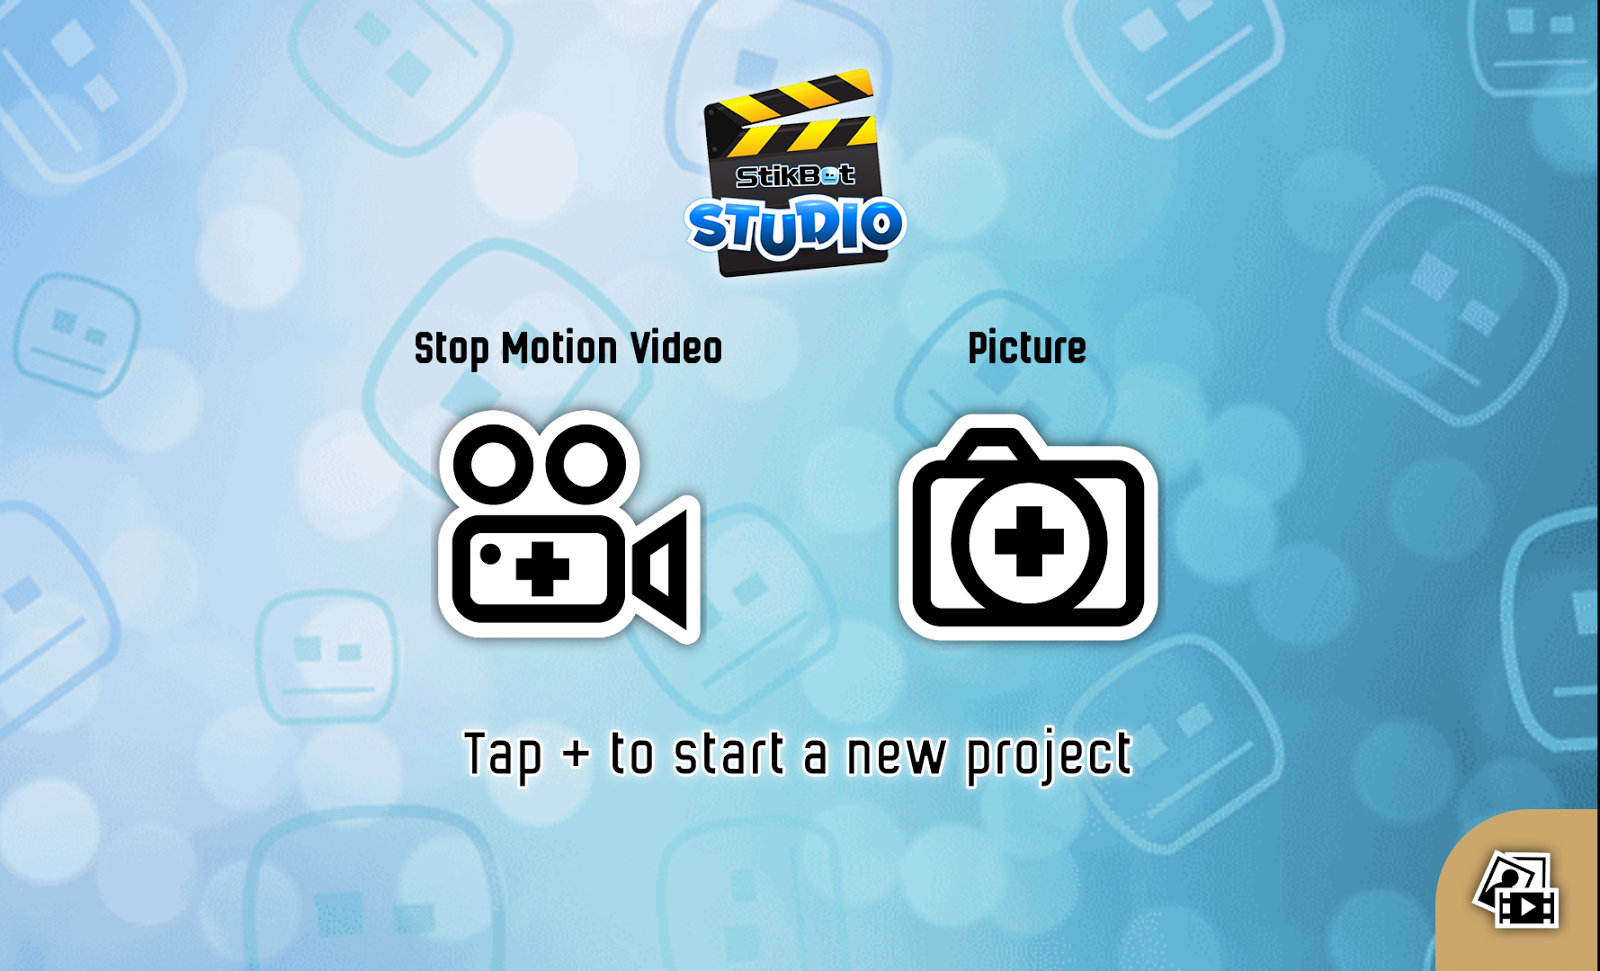 Make Animations with StikBot Zanimation Studio - Review